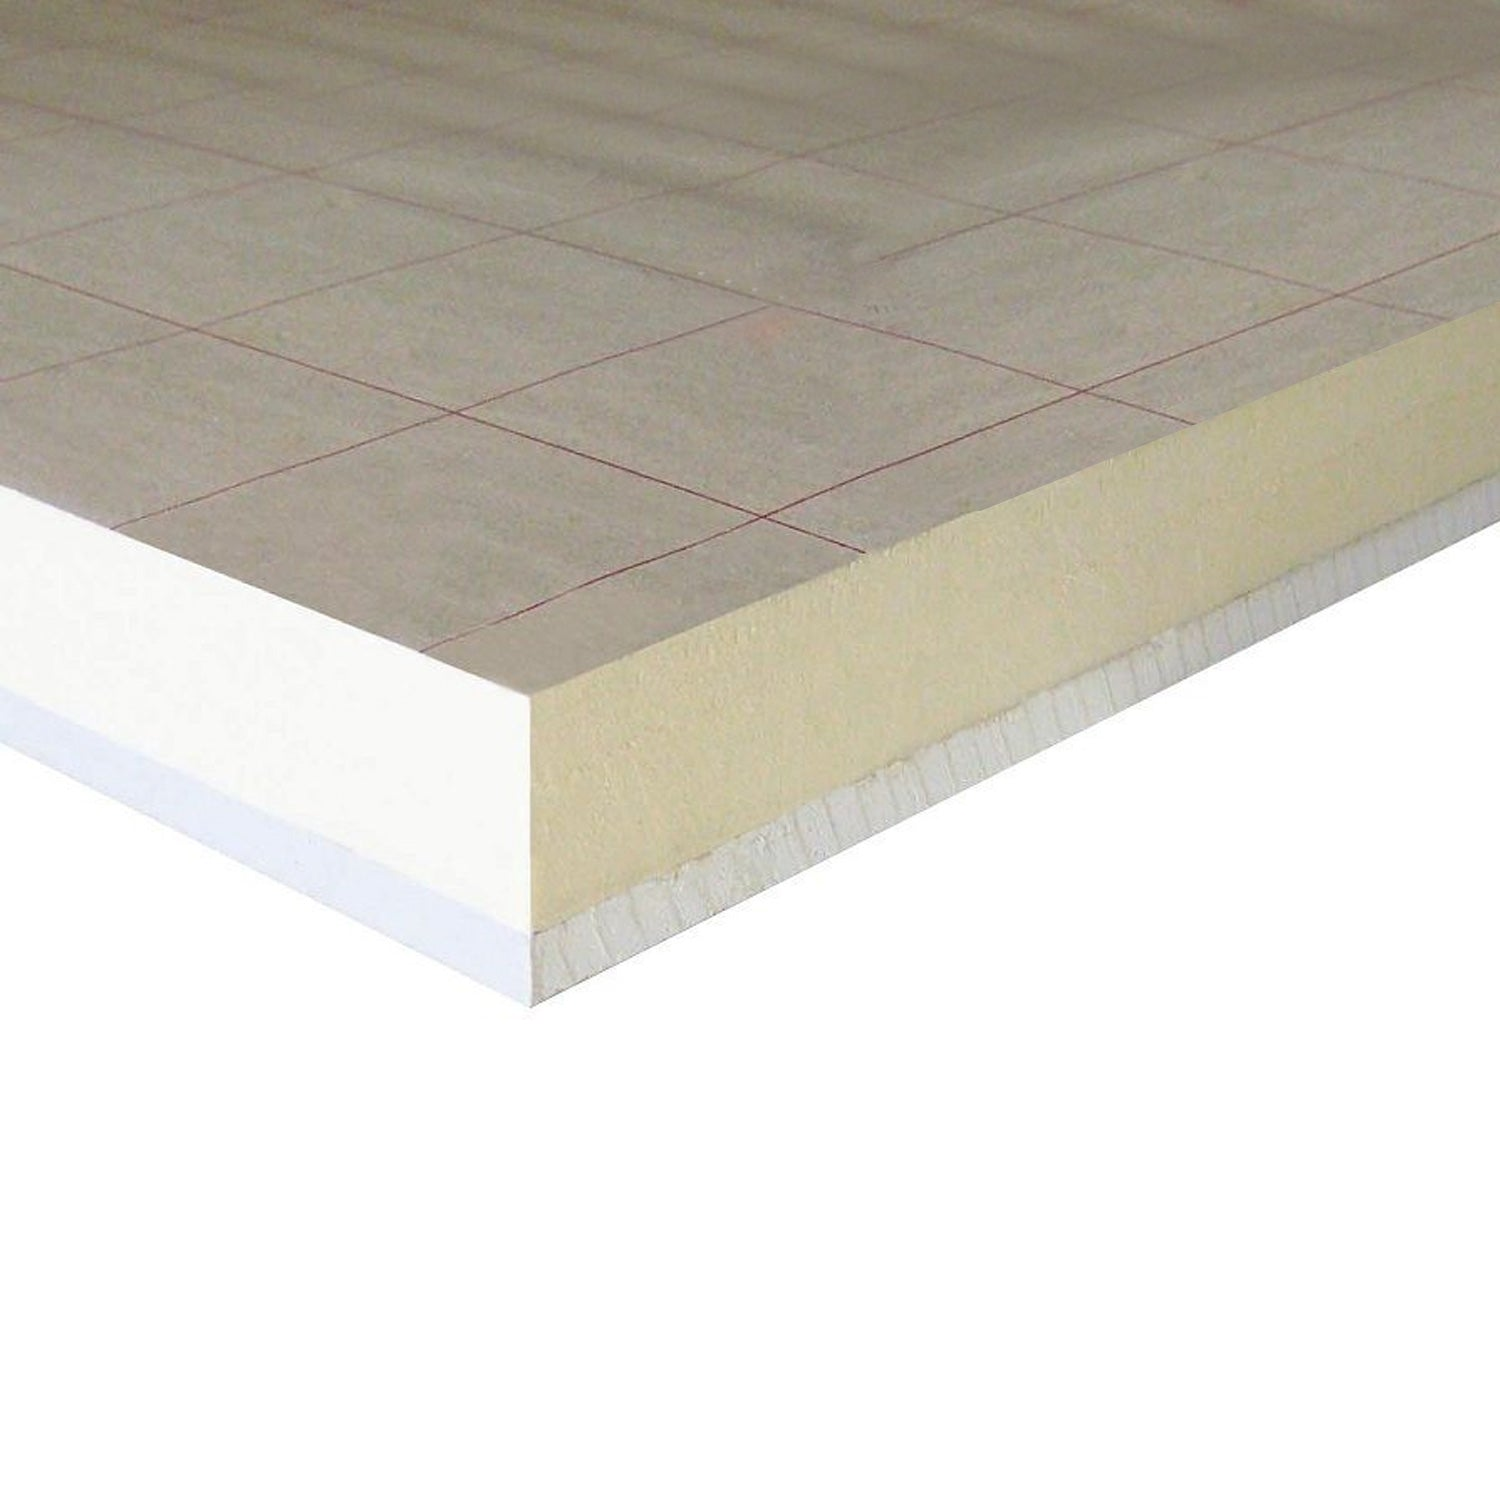 Thermal Laminate Plasterboard 72.5mm